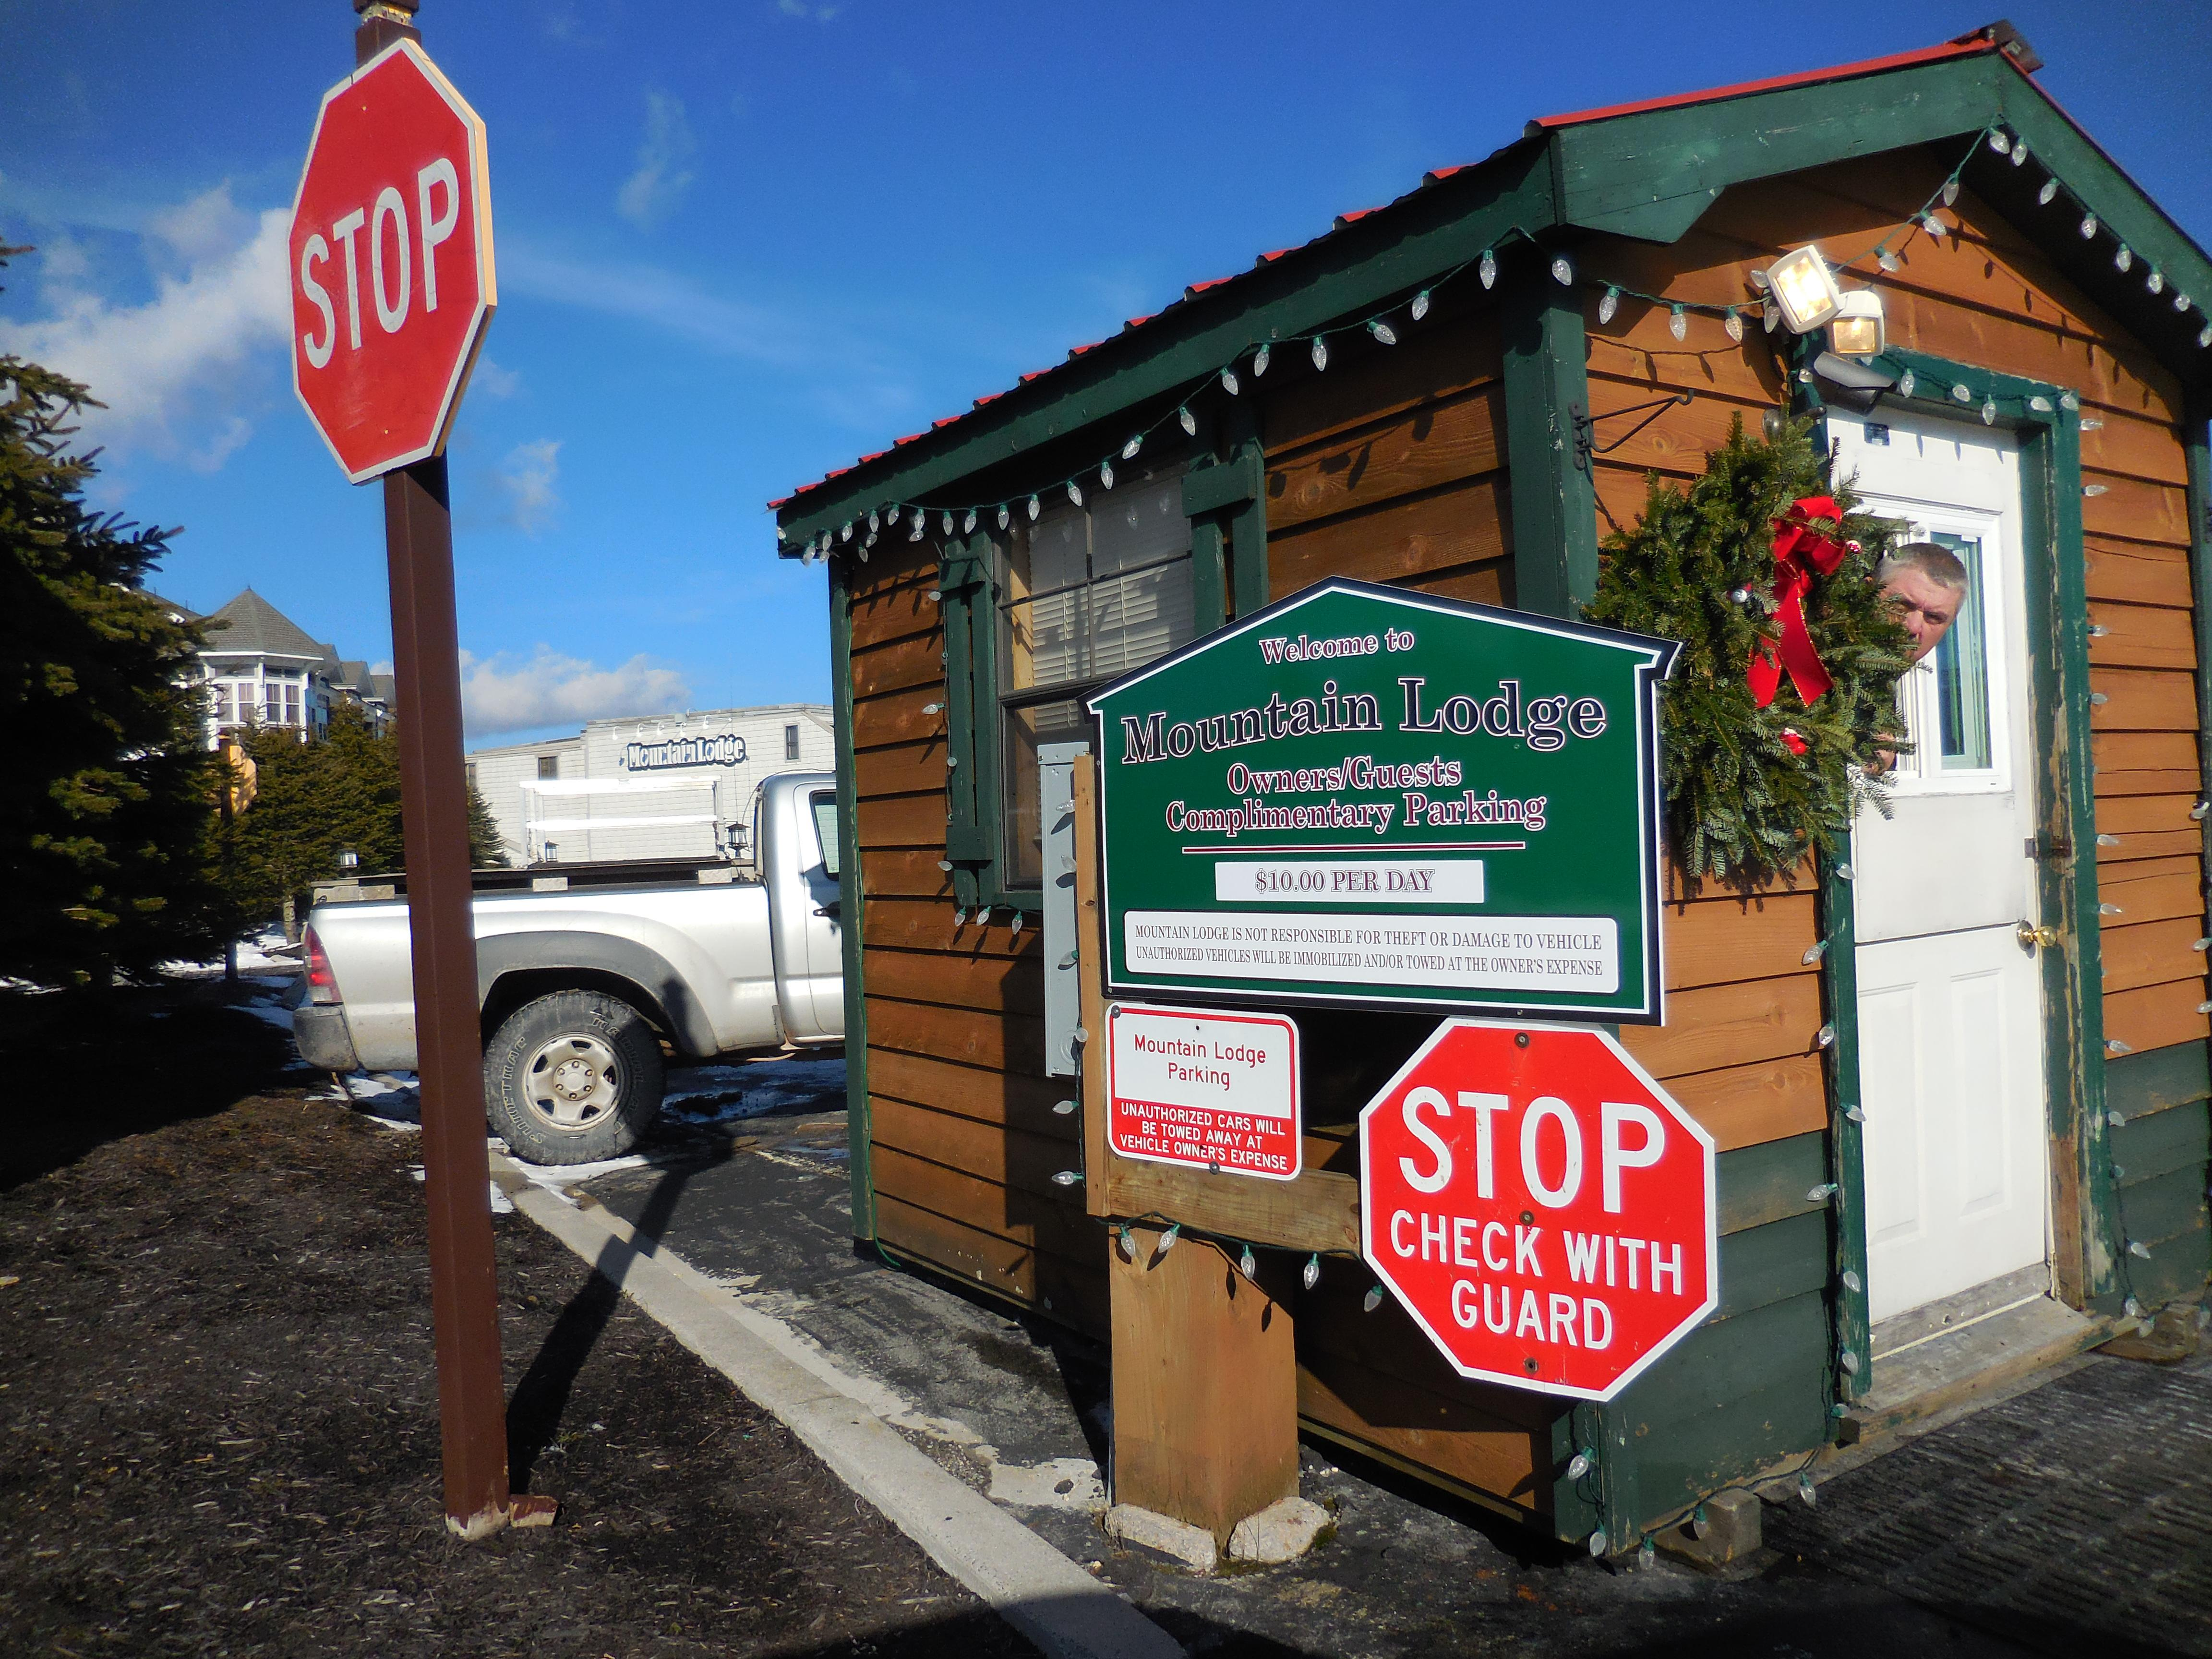 Mountain Lodge enjoys it's own security-guarded parking lot - steps away from the slopes.